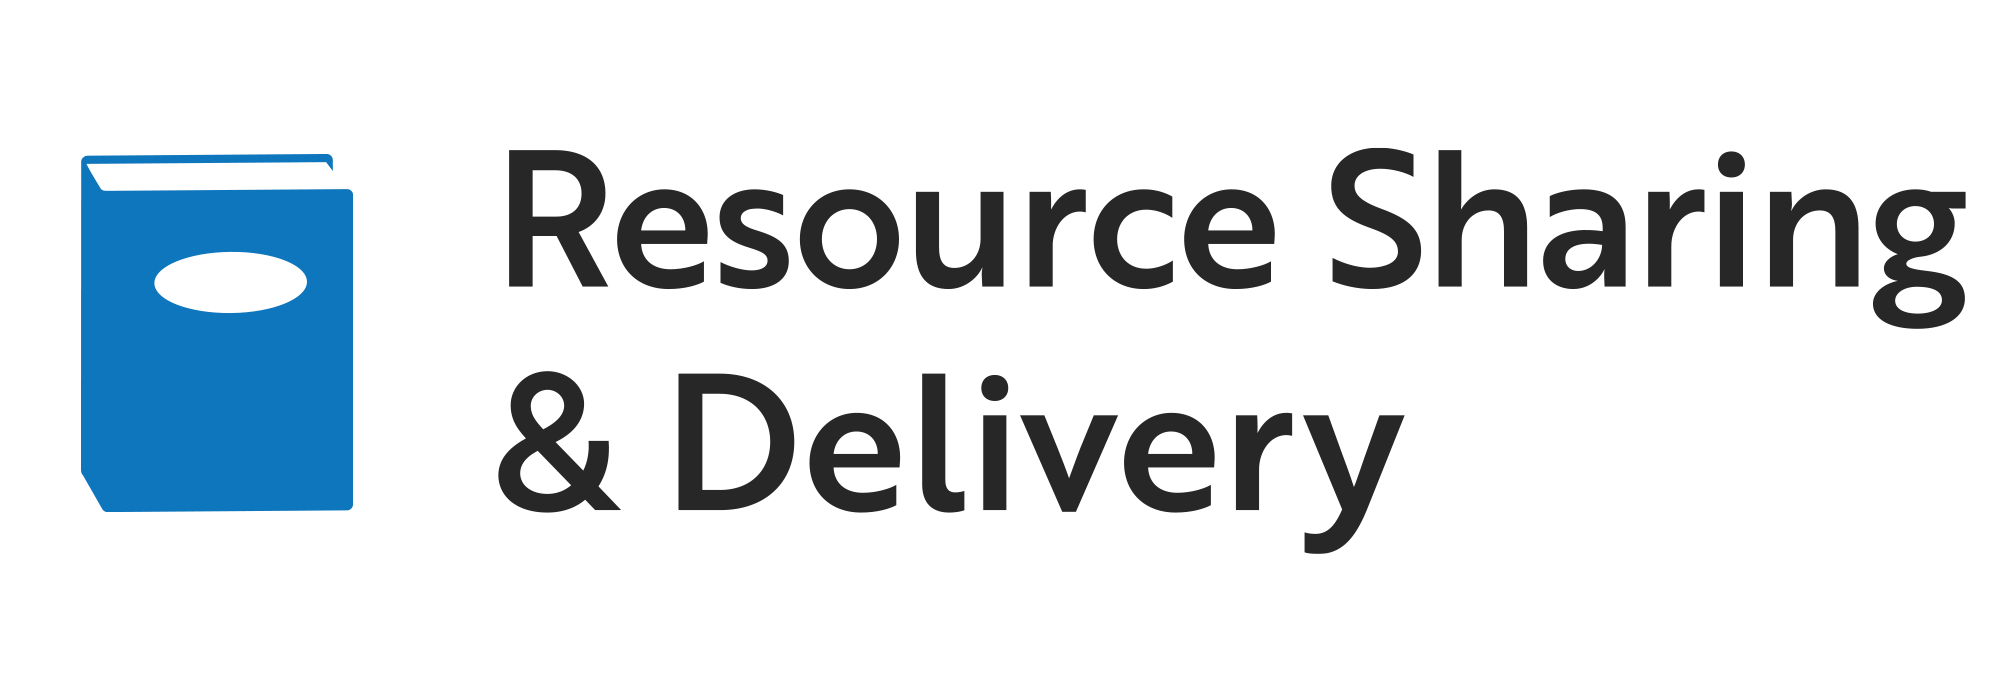 Resource Sharing & Delivery logo.